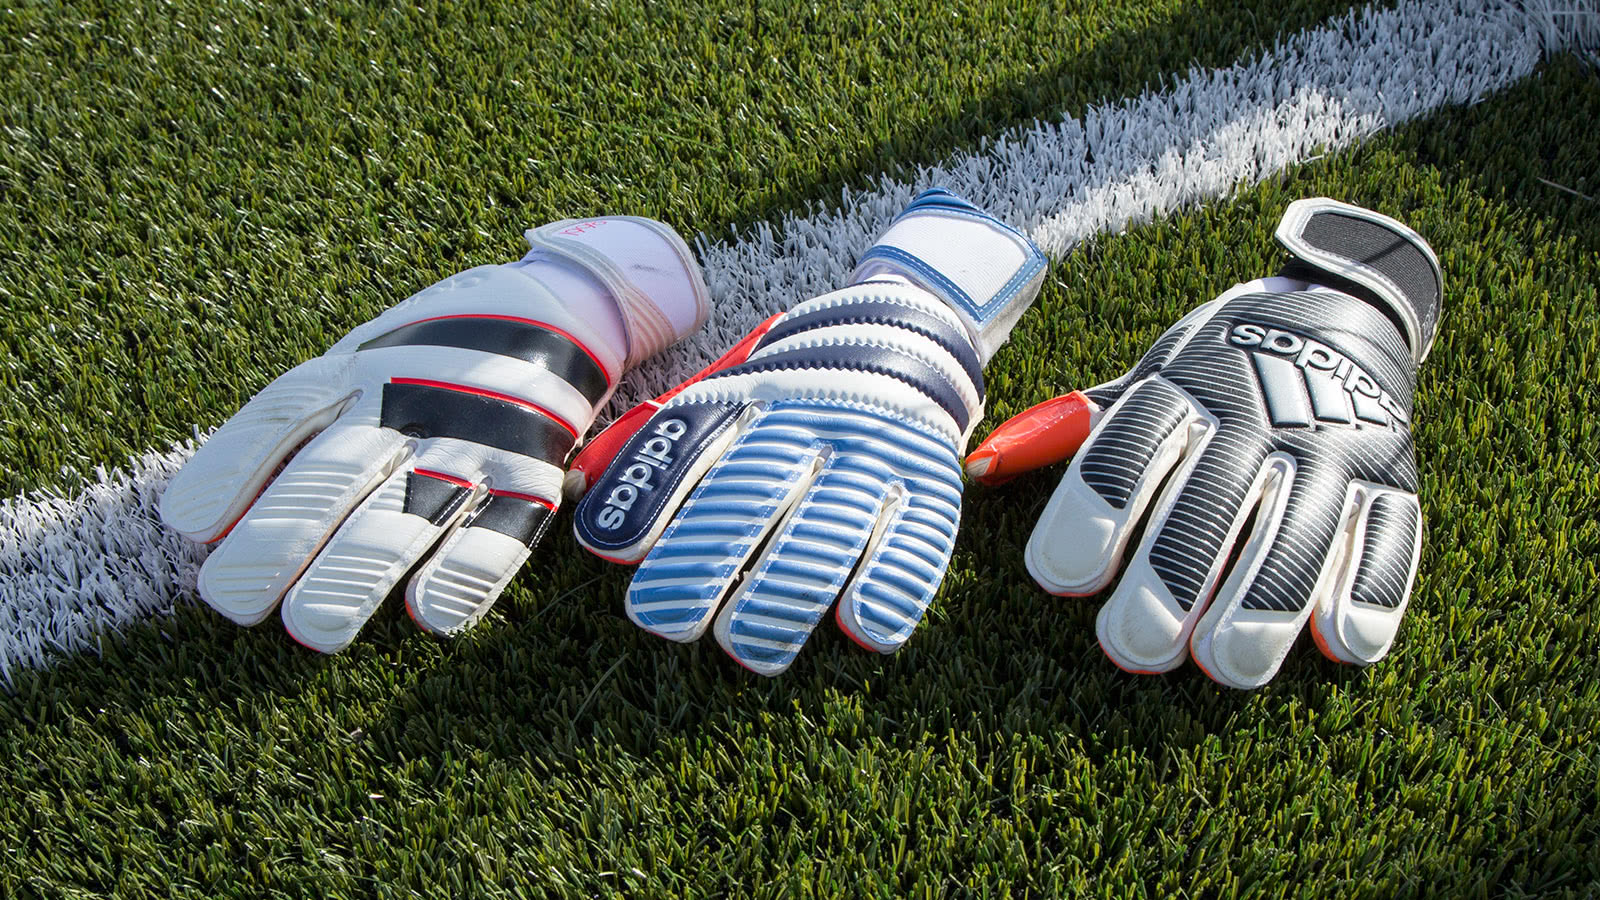 adidas history View the new adidas history pack goalkeeper glove collection now at pro:direct soccer - the professional's choice.